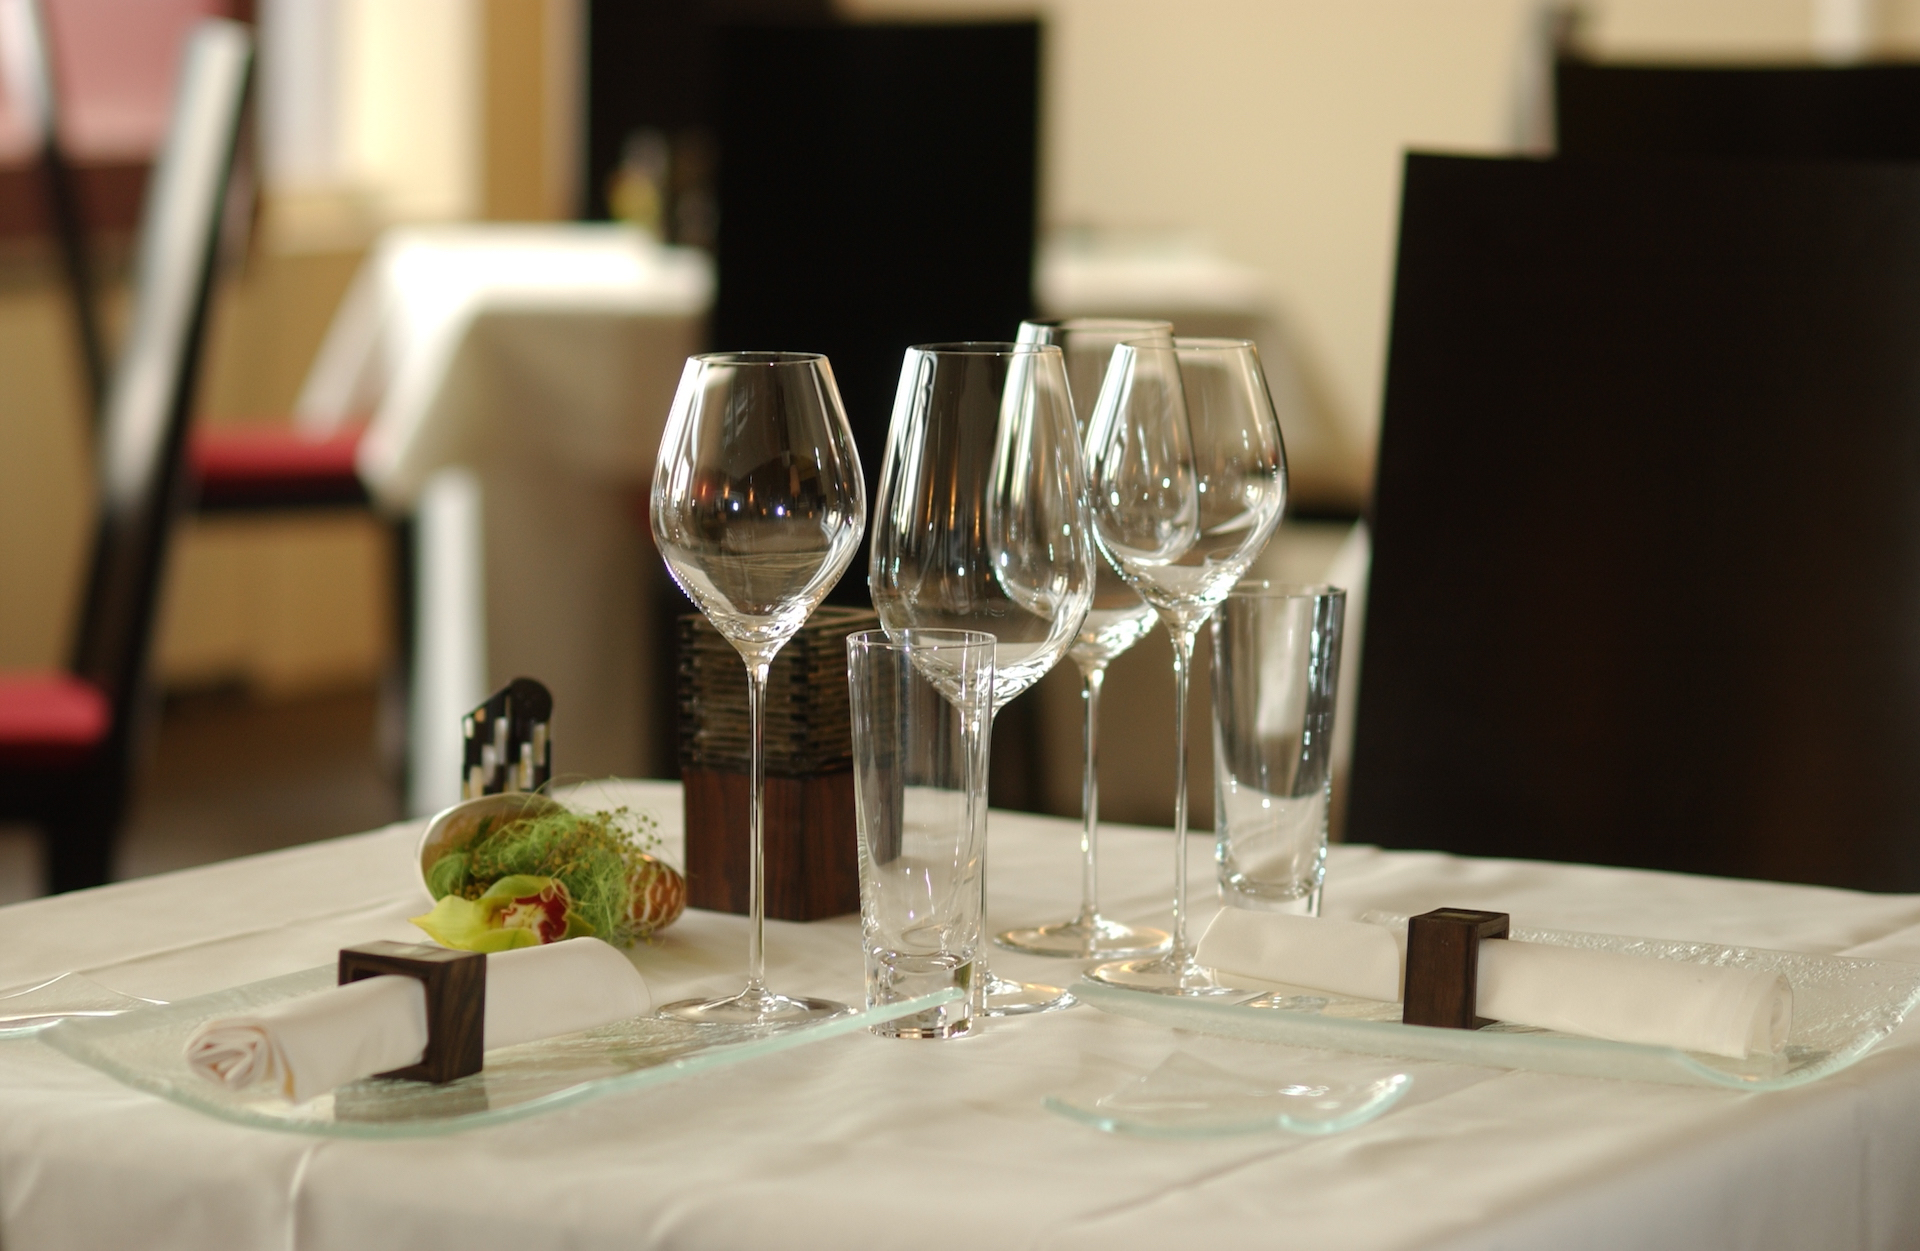 Fine dining restaurant table setup - Table Set Up At Restaurant Spice Hotel Restaurant Rigiblick Z Rich A